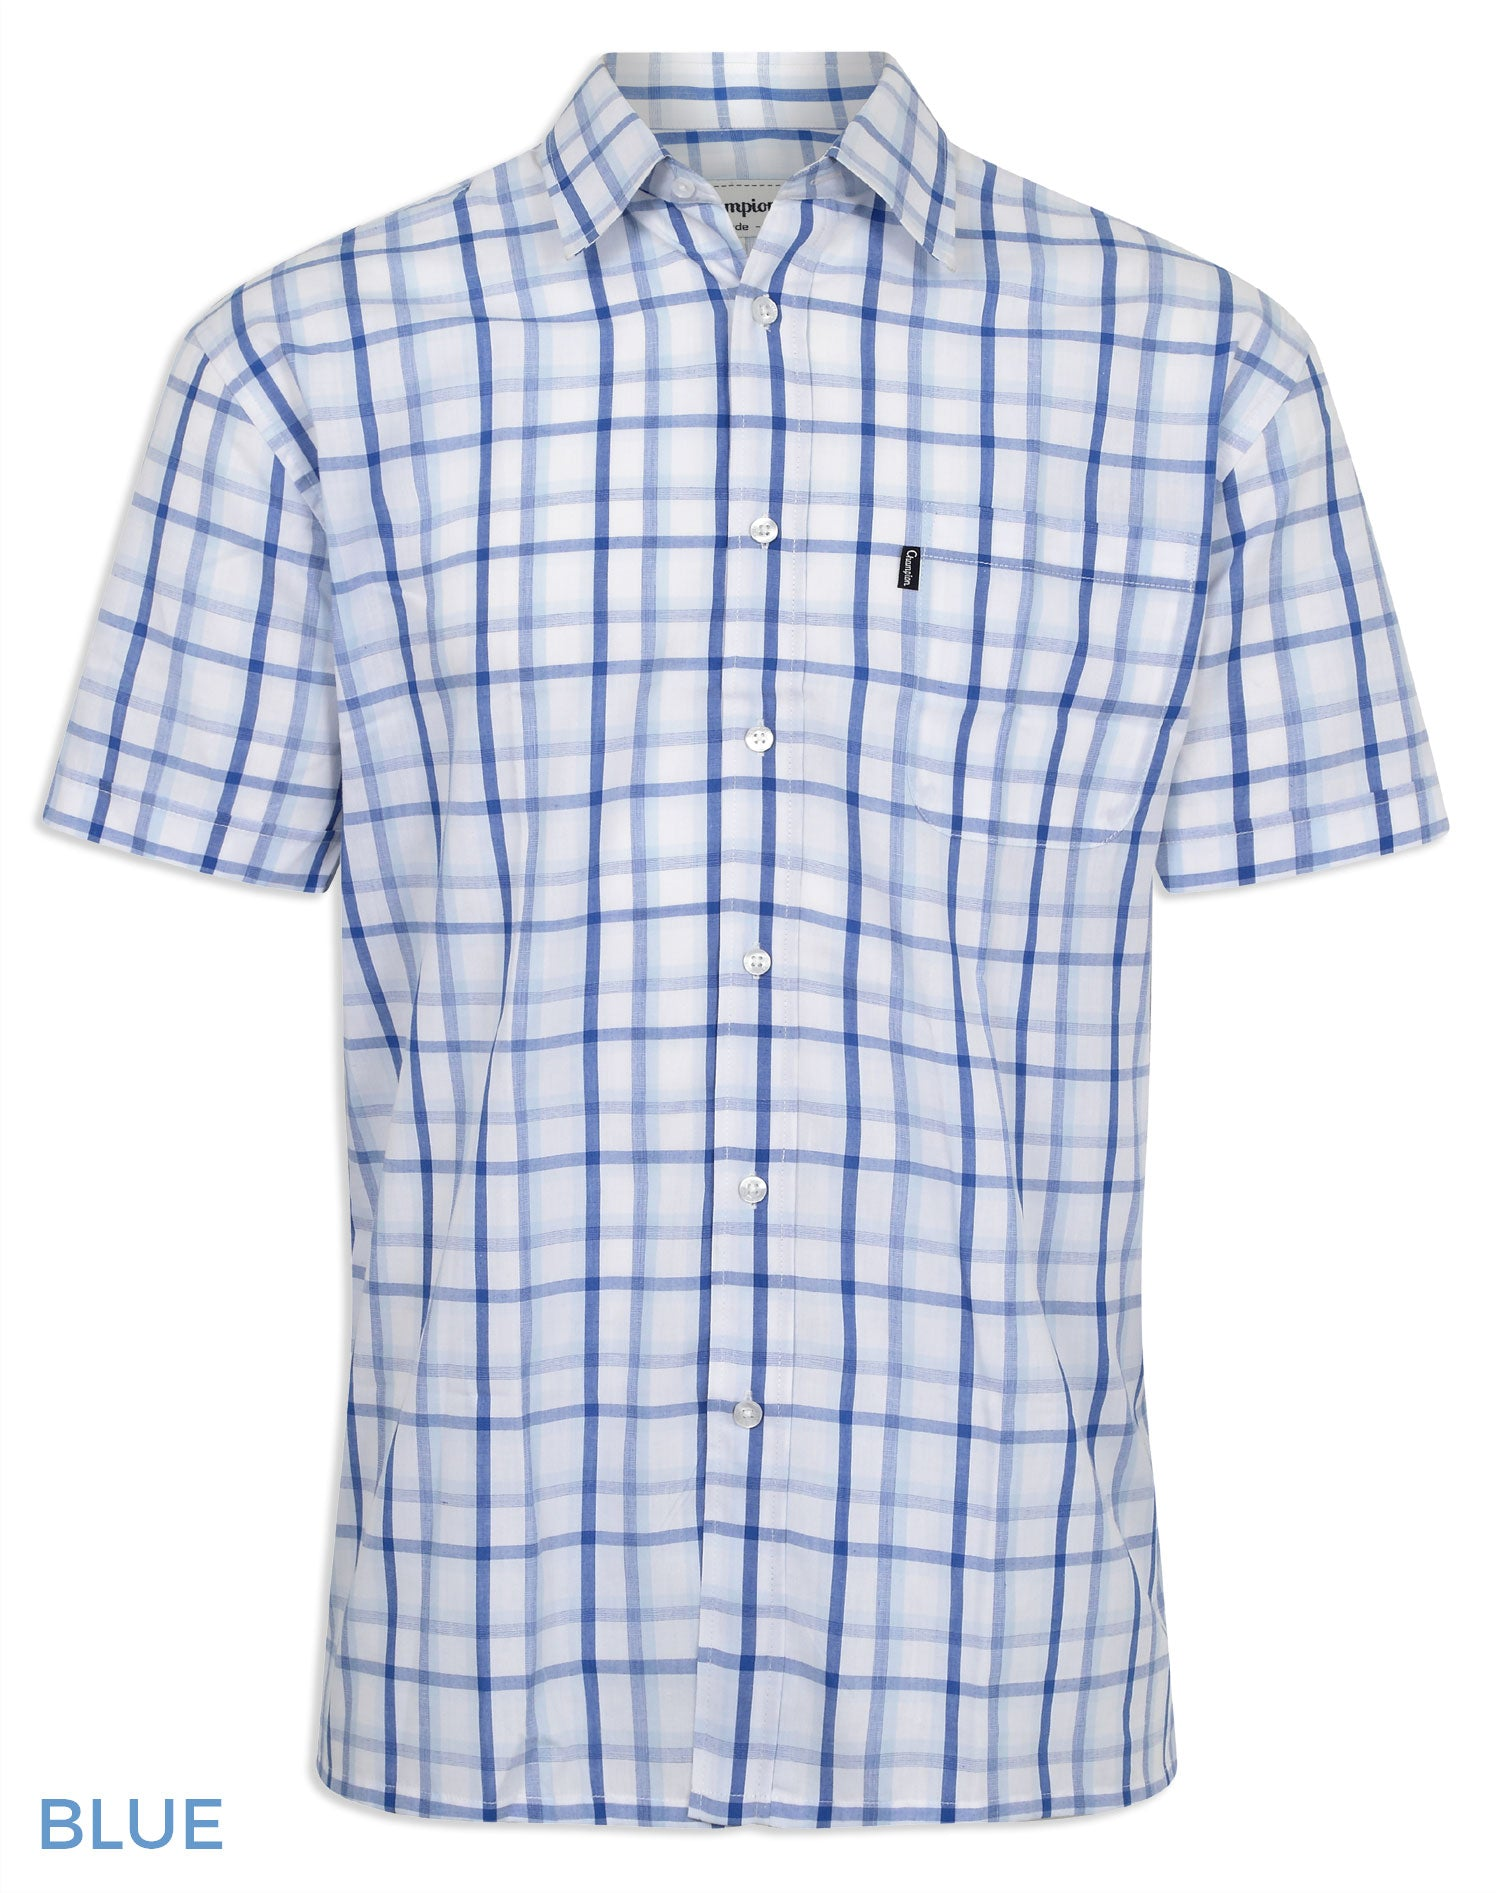 Blue Check Champion Bude Short Sleeve Shirt